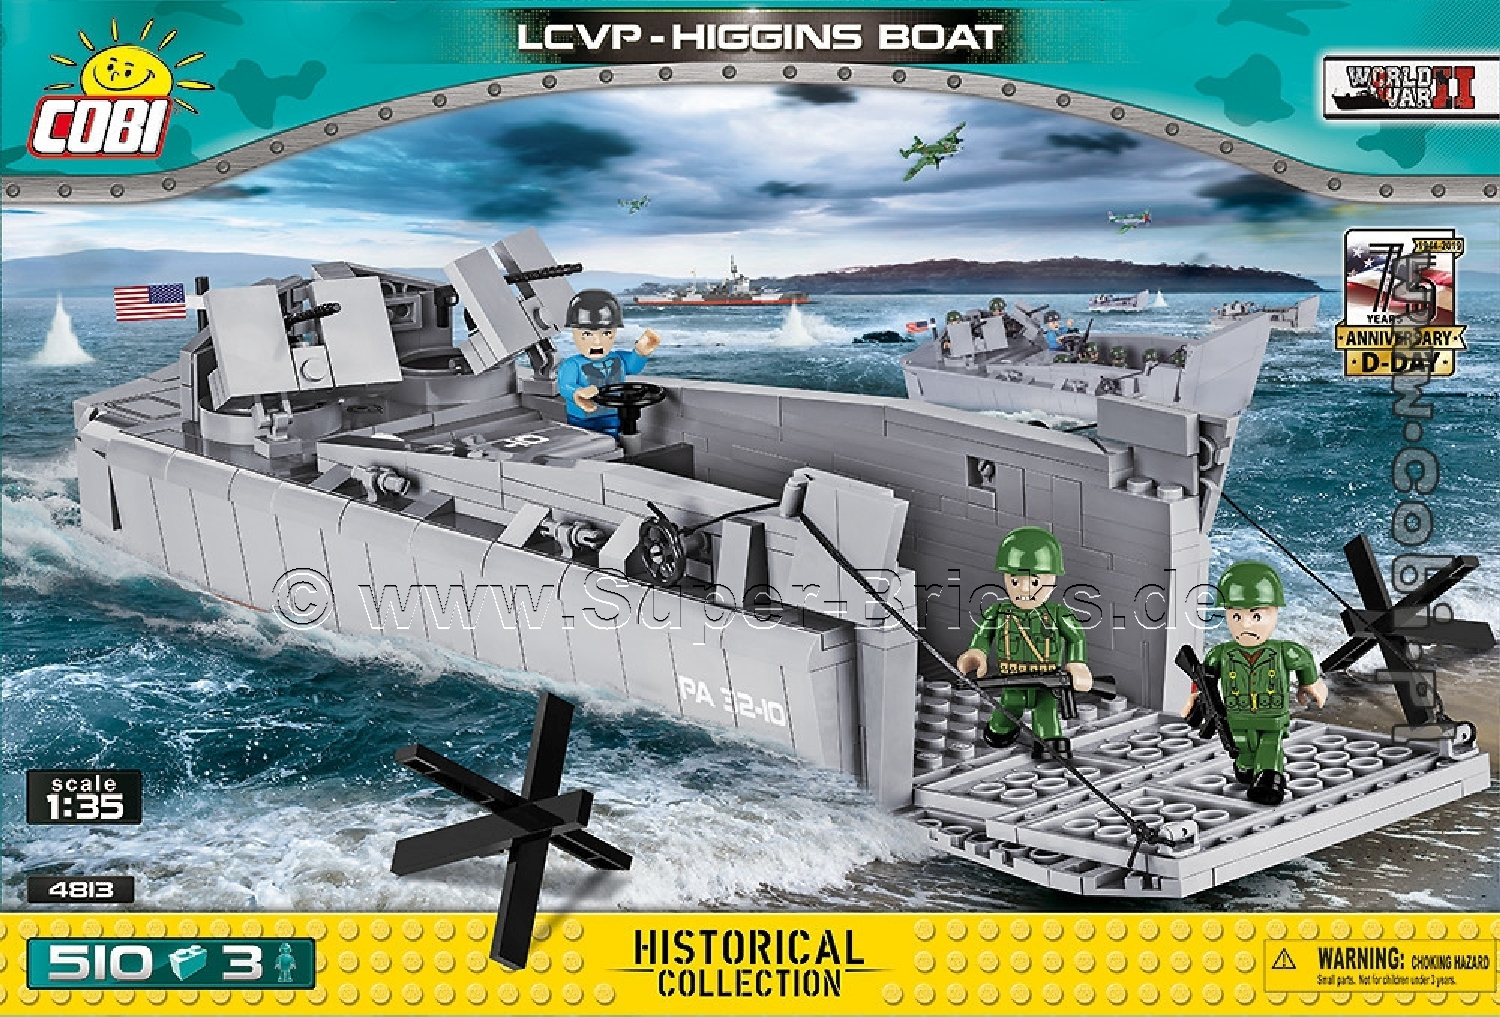 4813_Cobi_2.WK_LCVP_Landungsboot_www-super-bricks.de_1